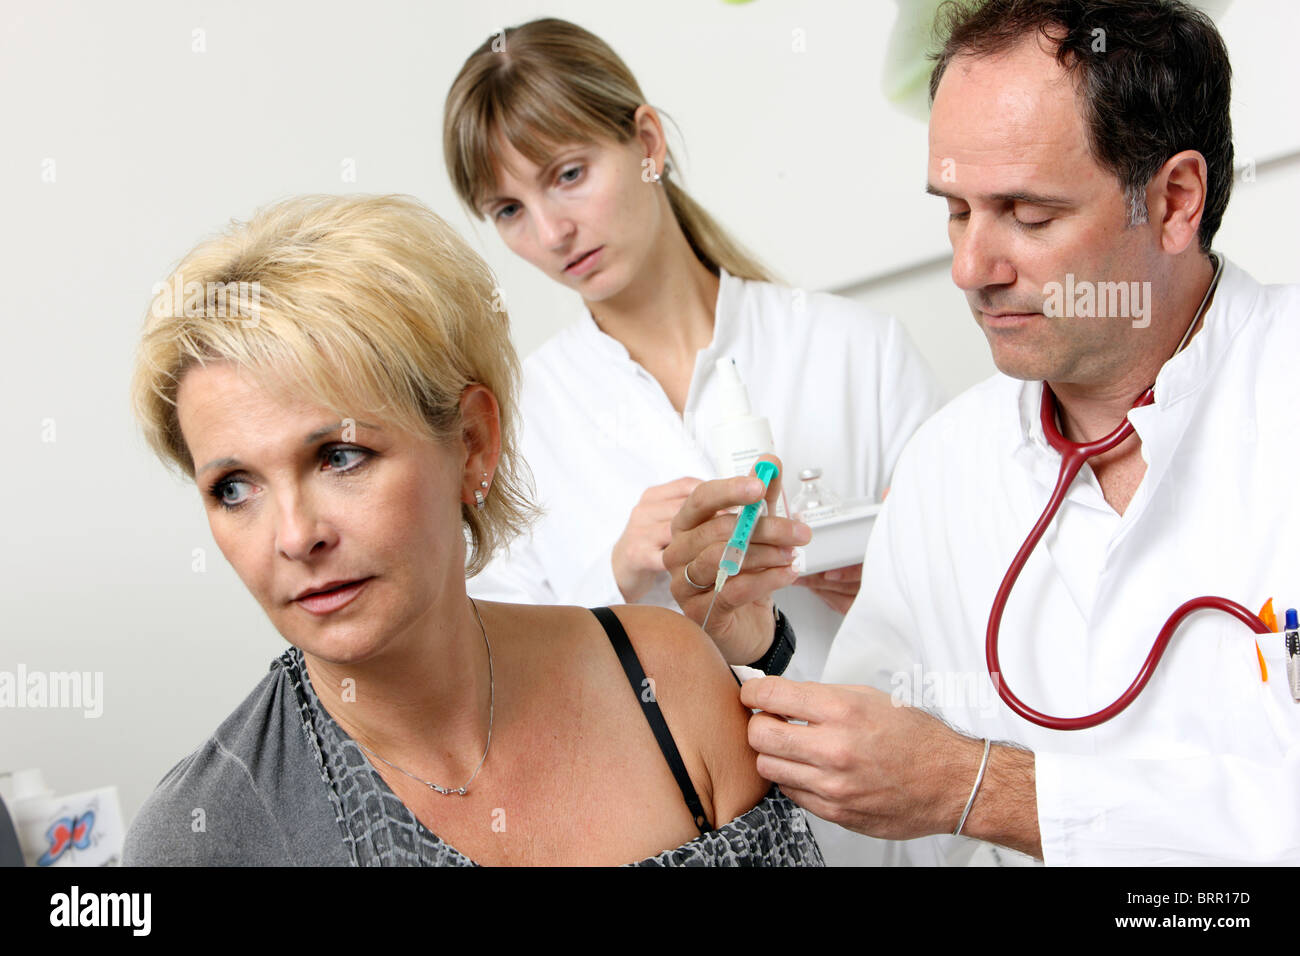 Medical practice, Immunization injection. Female patient. - Stock Image